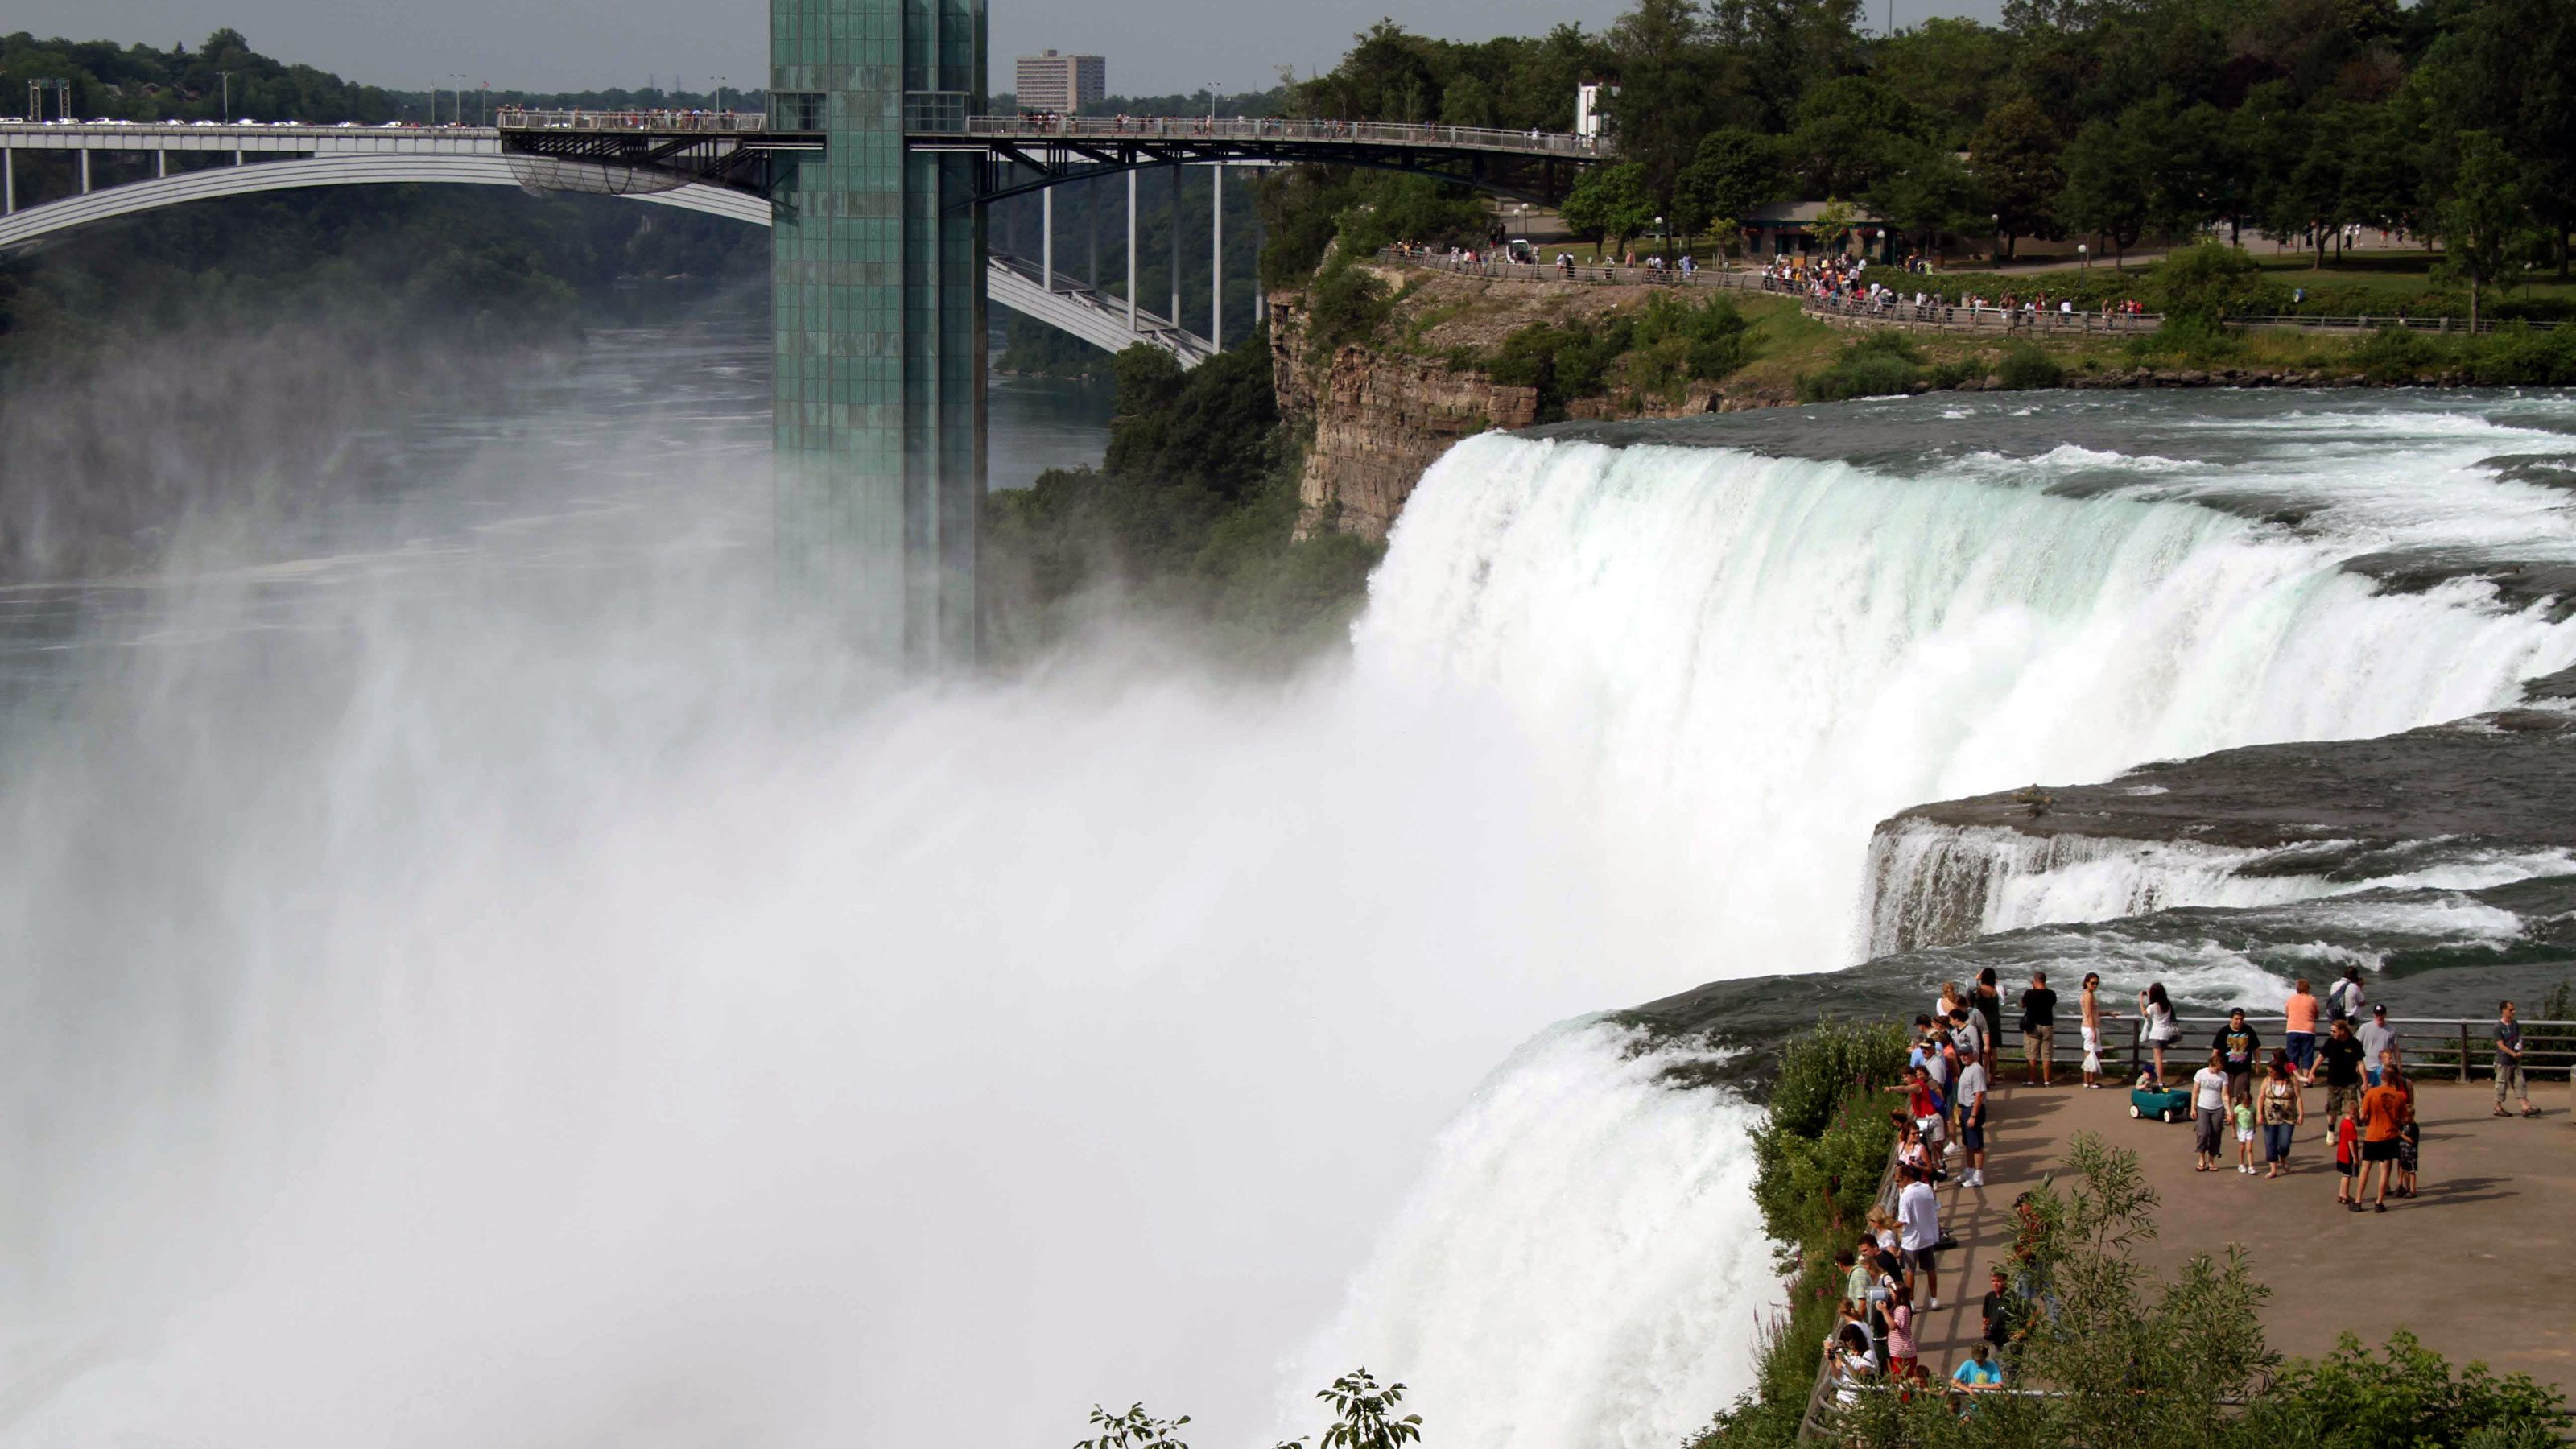 Observation point at Niagara Falls with the Rainbow Bridge in the background